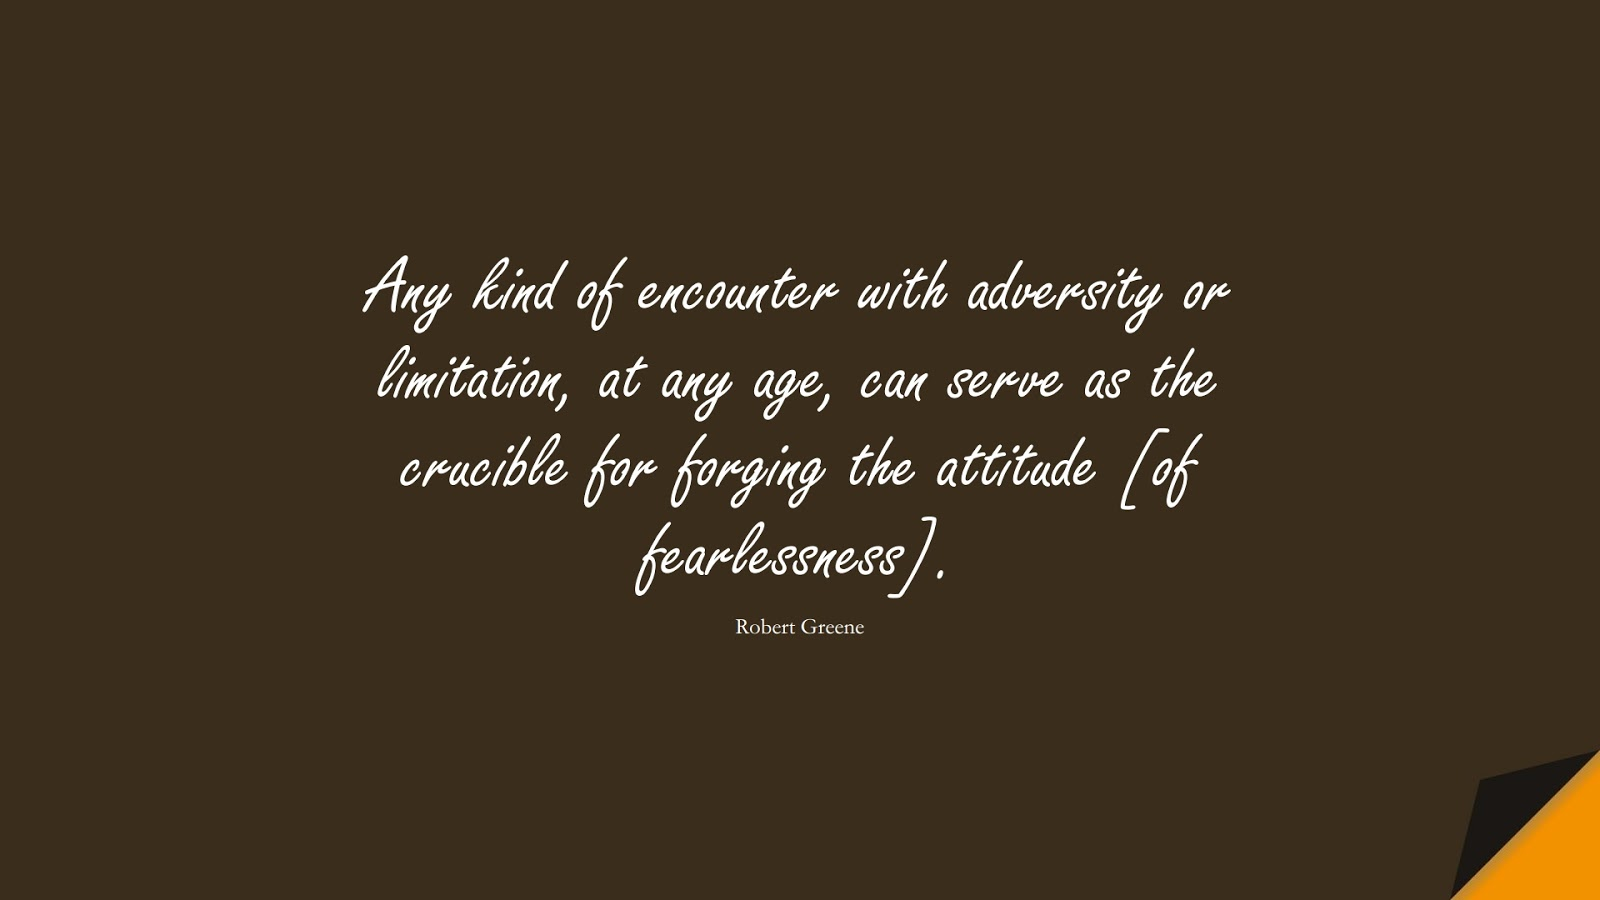 Any kind of encounter with adversity or limitation, at any age, can serve as the crucible for forging the attitude [of fearlessness]. (Robert Greene);  #EncouragingQuotes